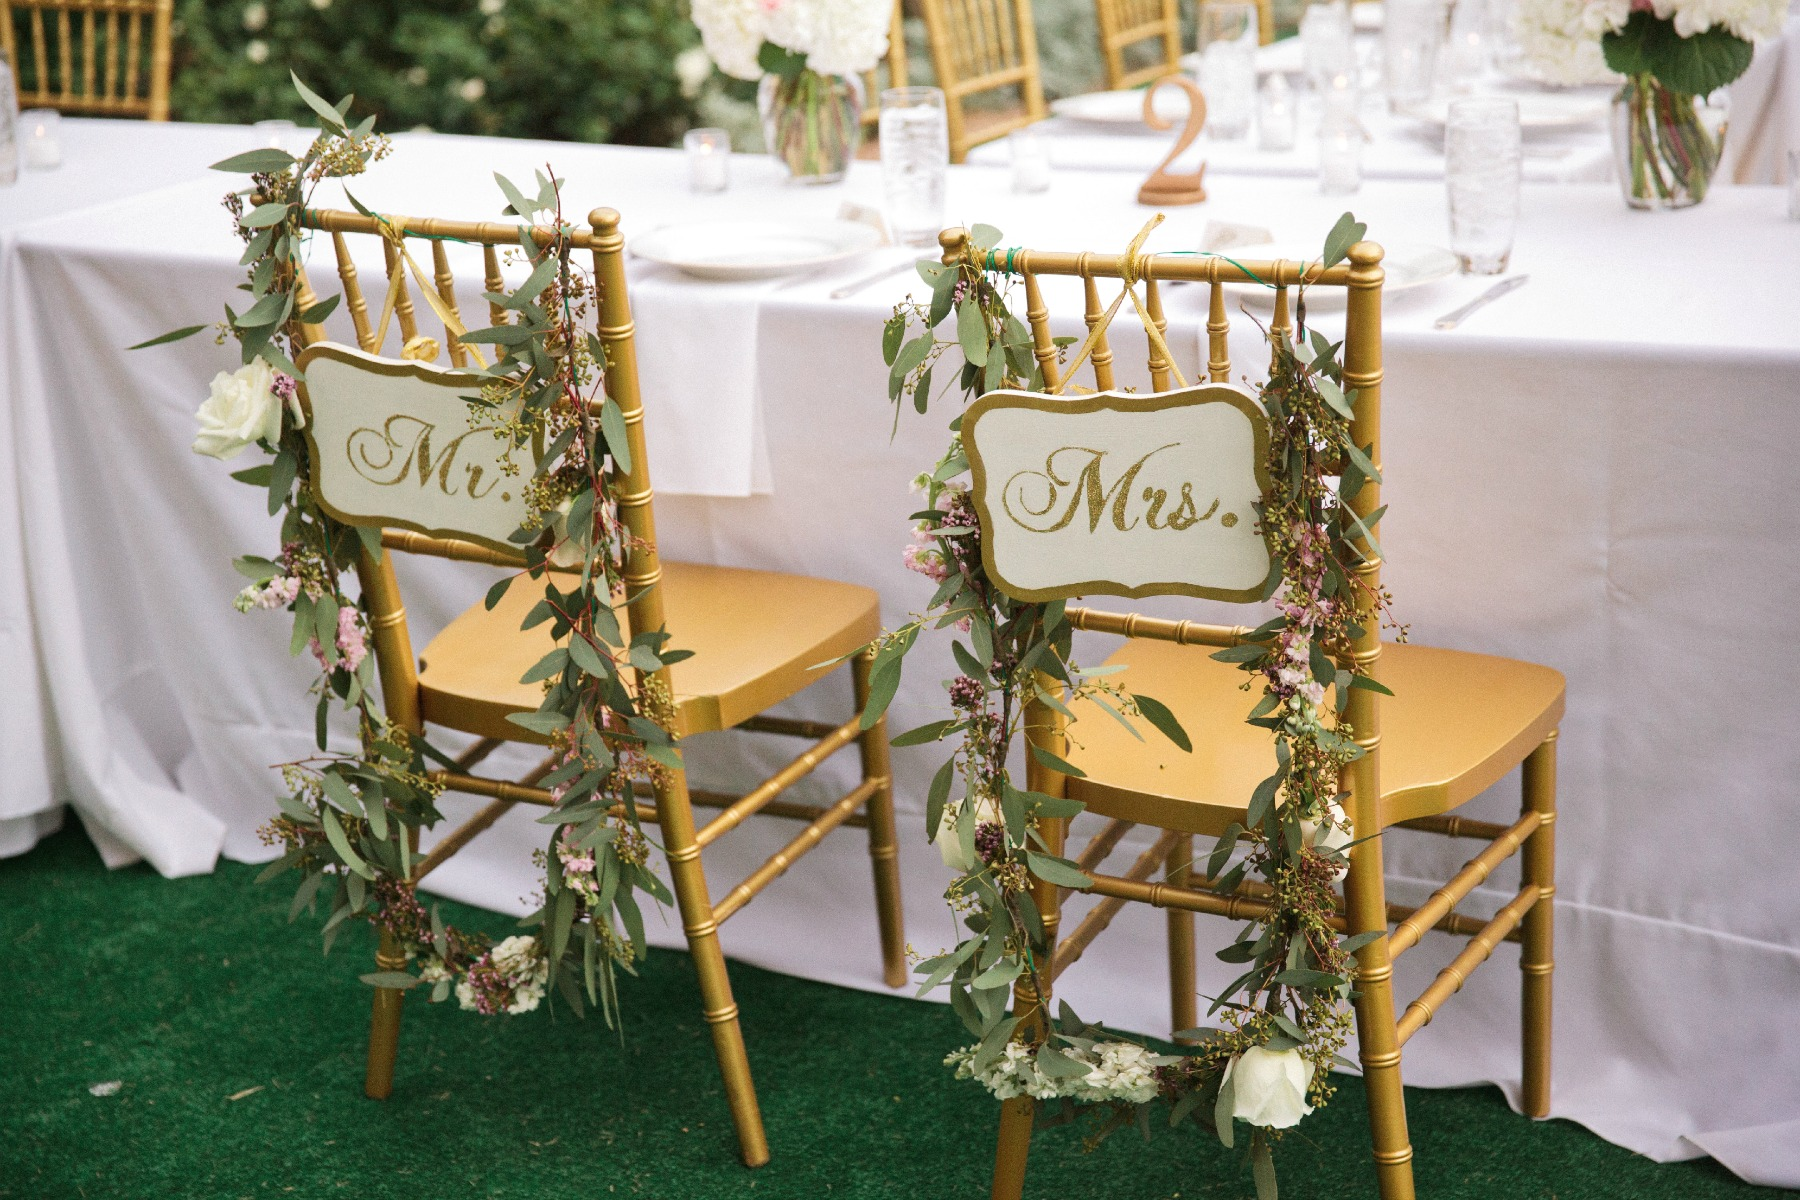 decorated Mr. and Mrs. gold chivalri chairs